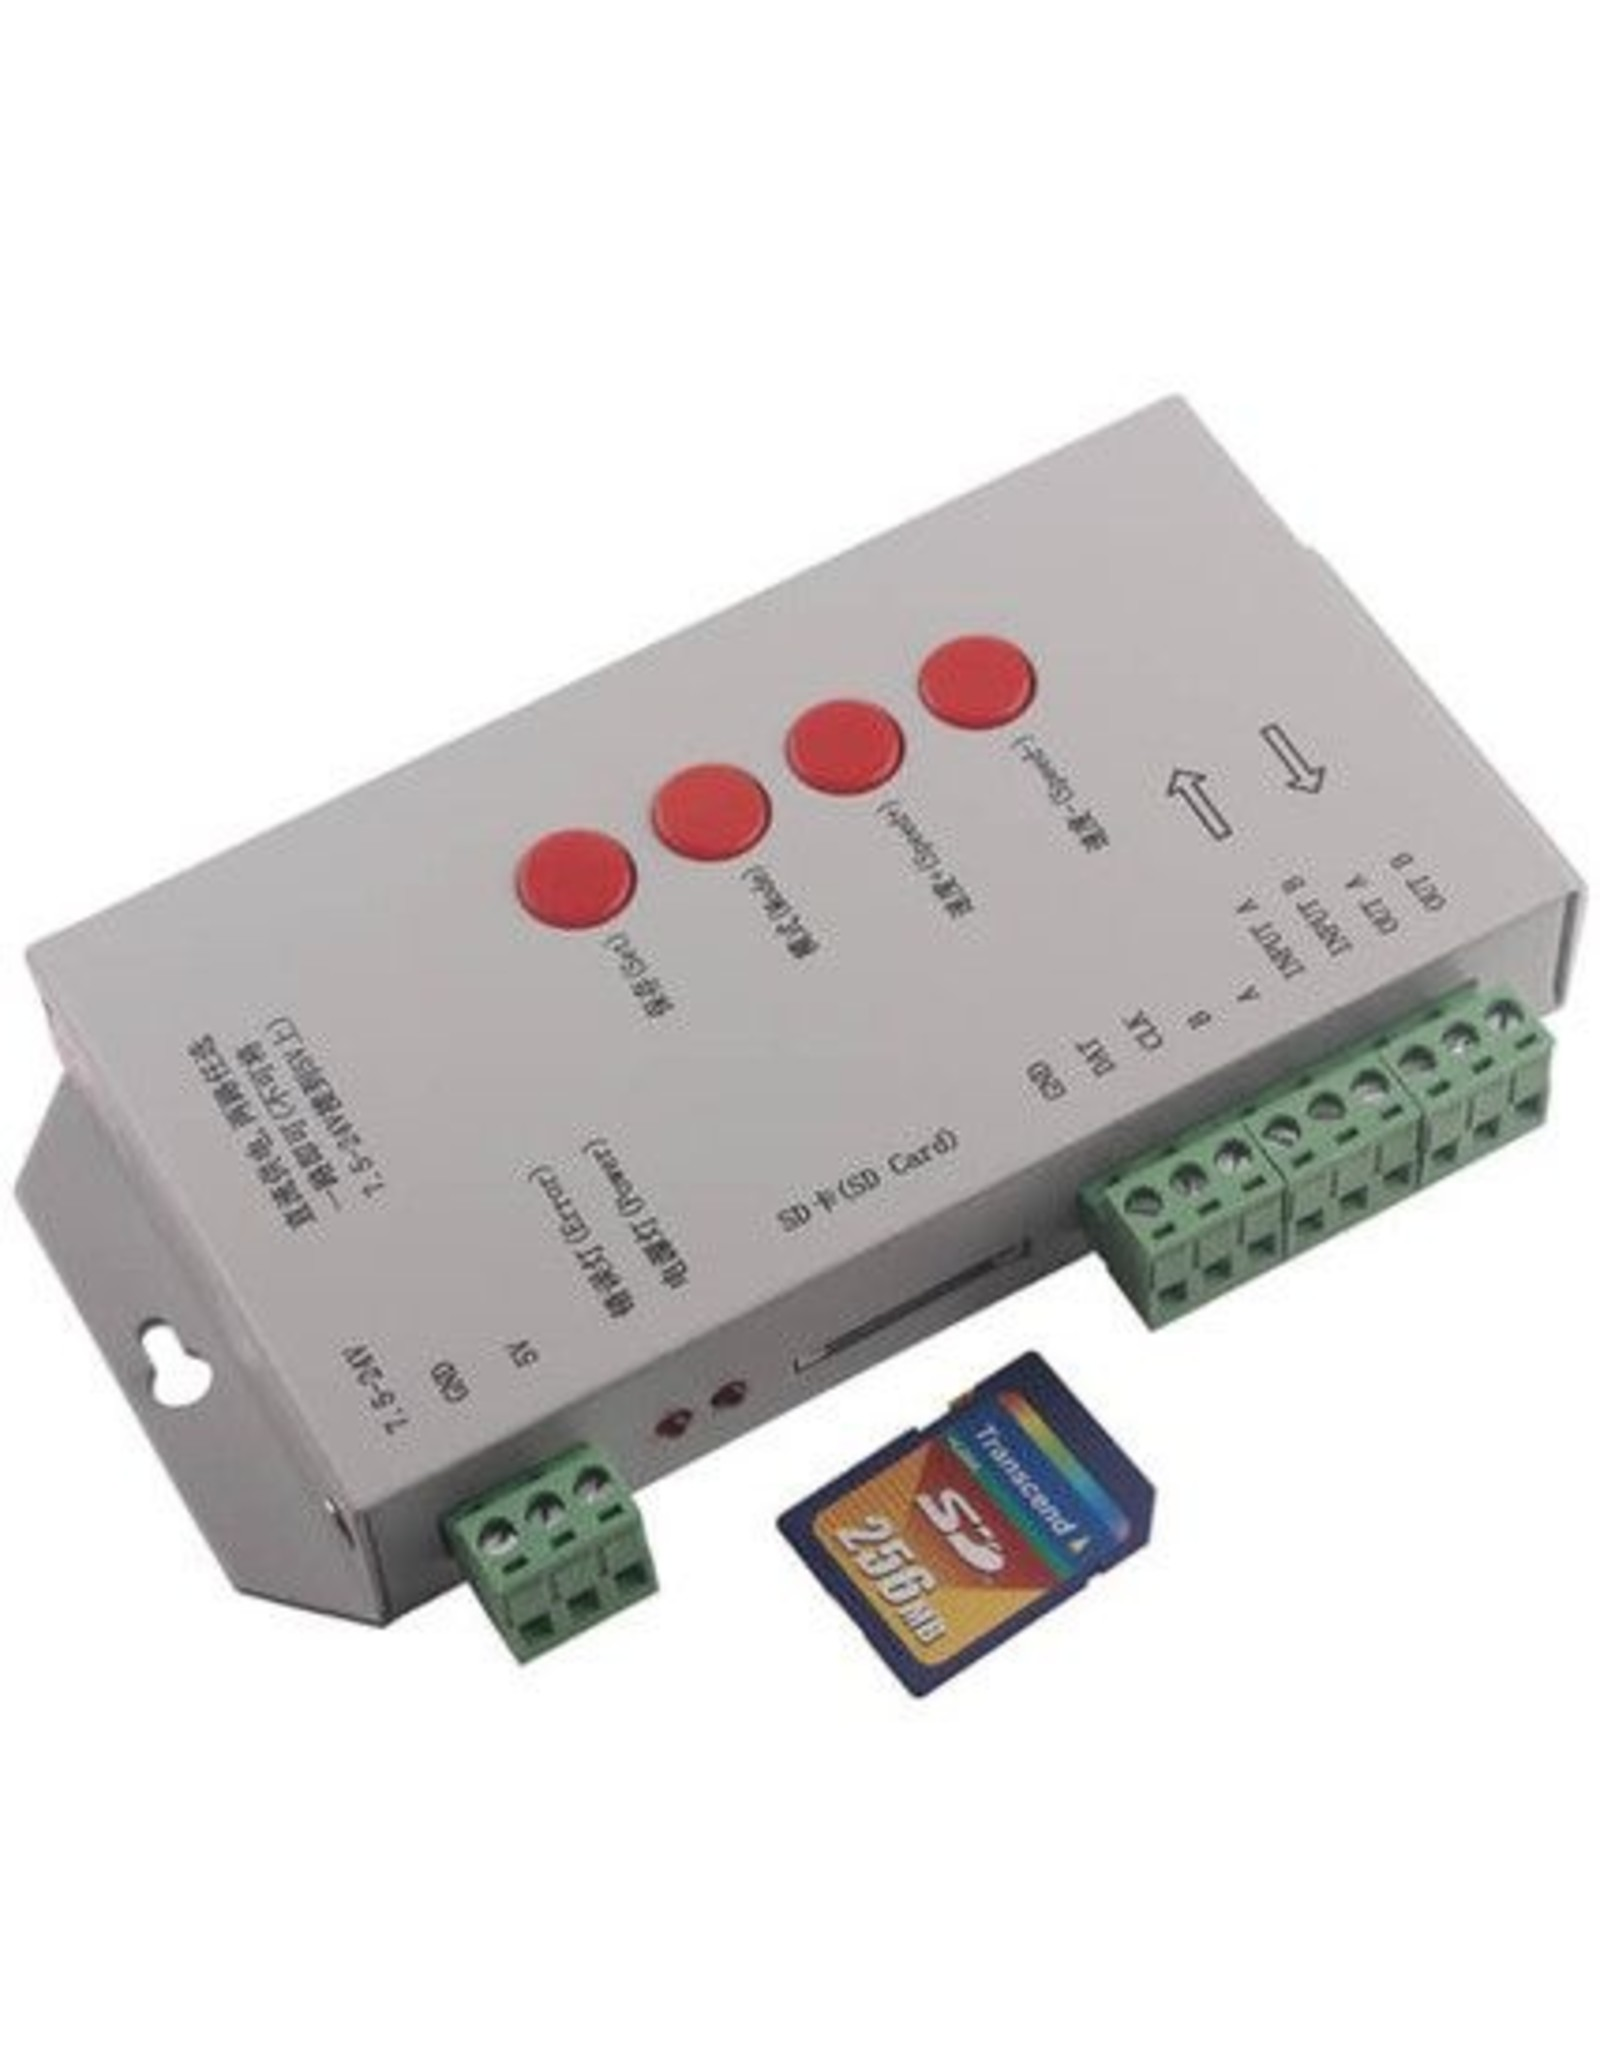 Lights T-1000s - Digitale ledstrip controller with SD card - 2048 max pixels